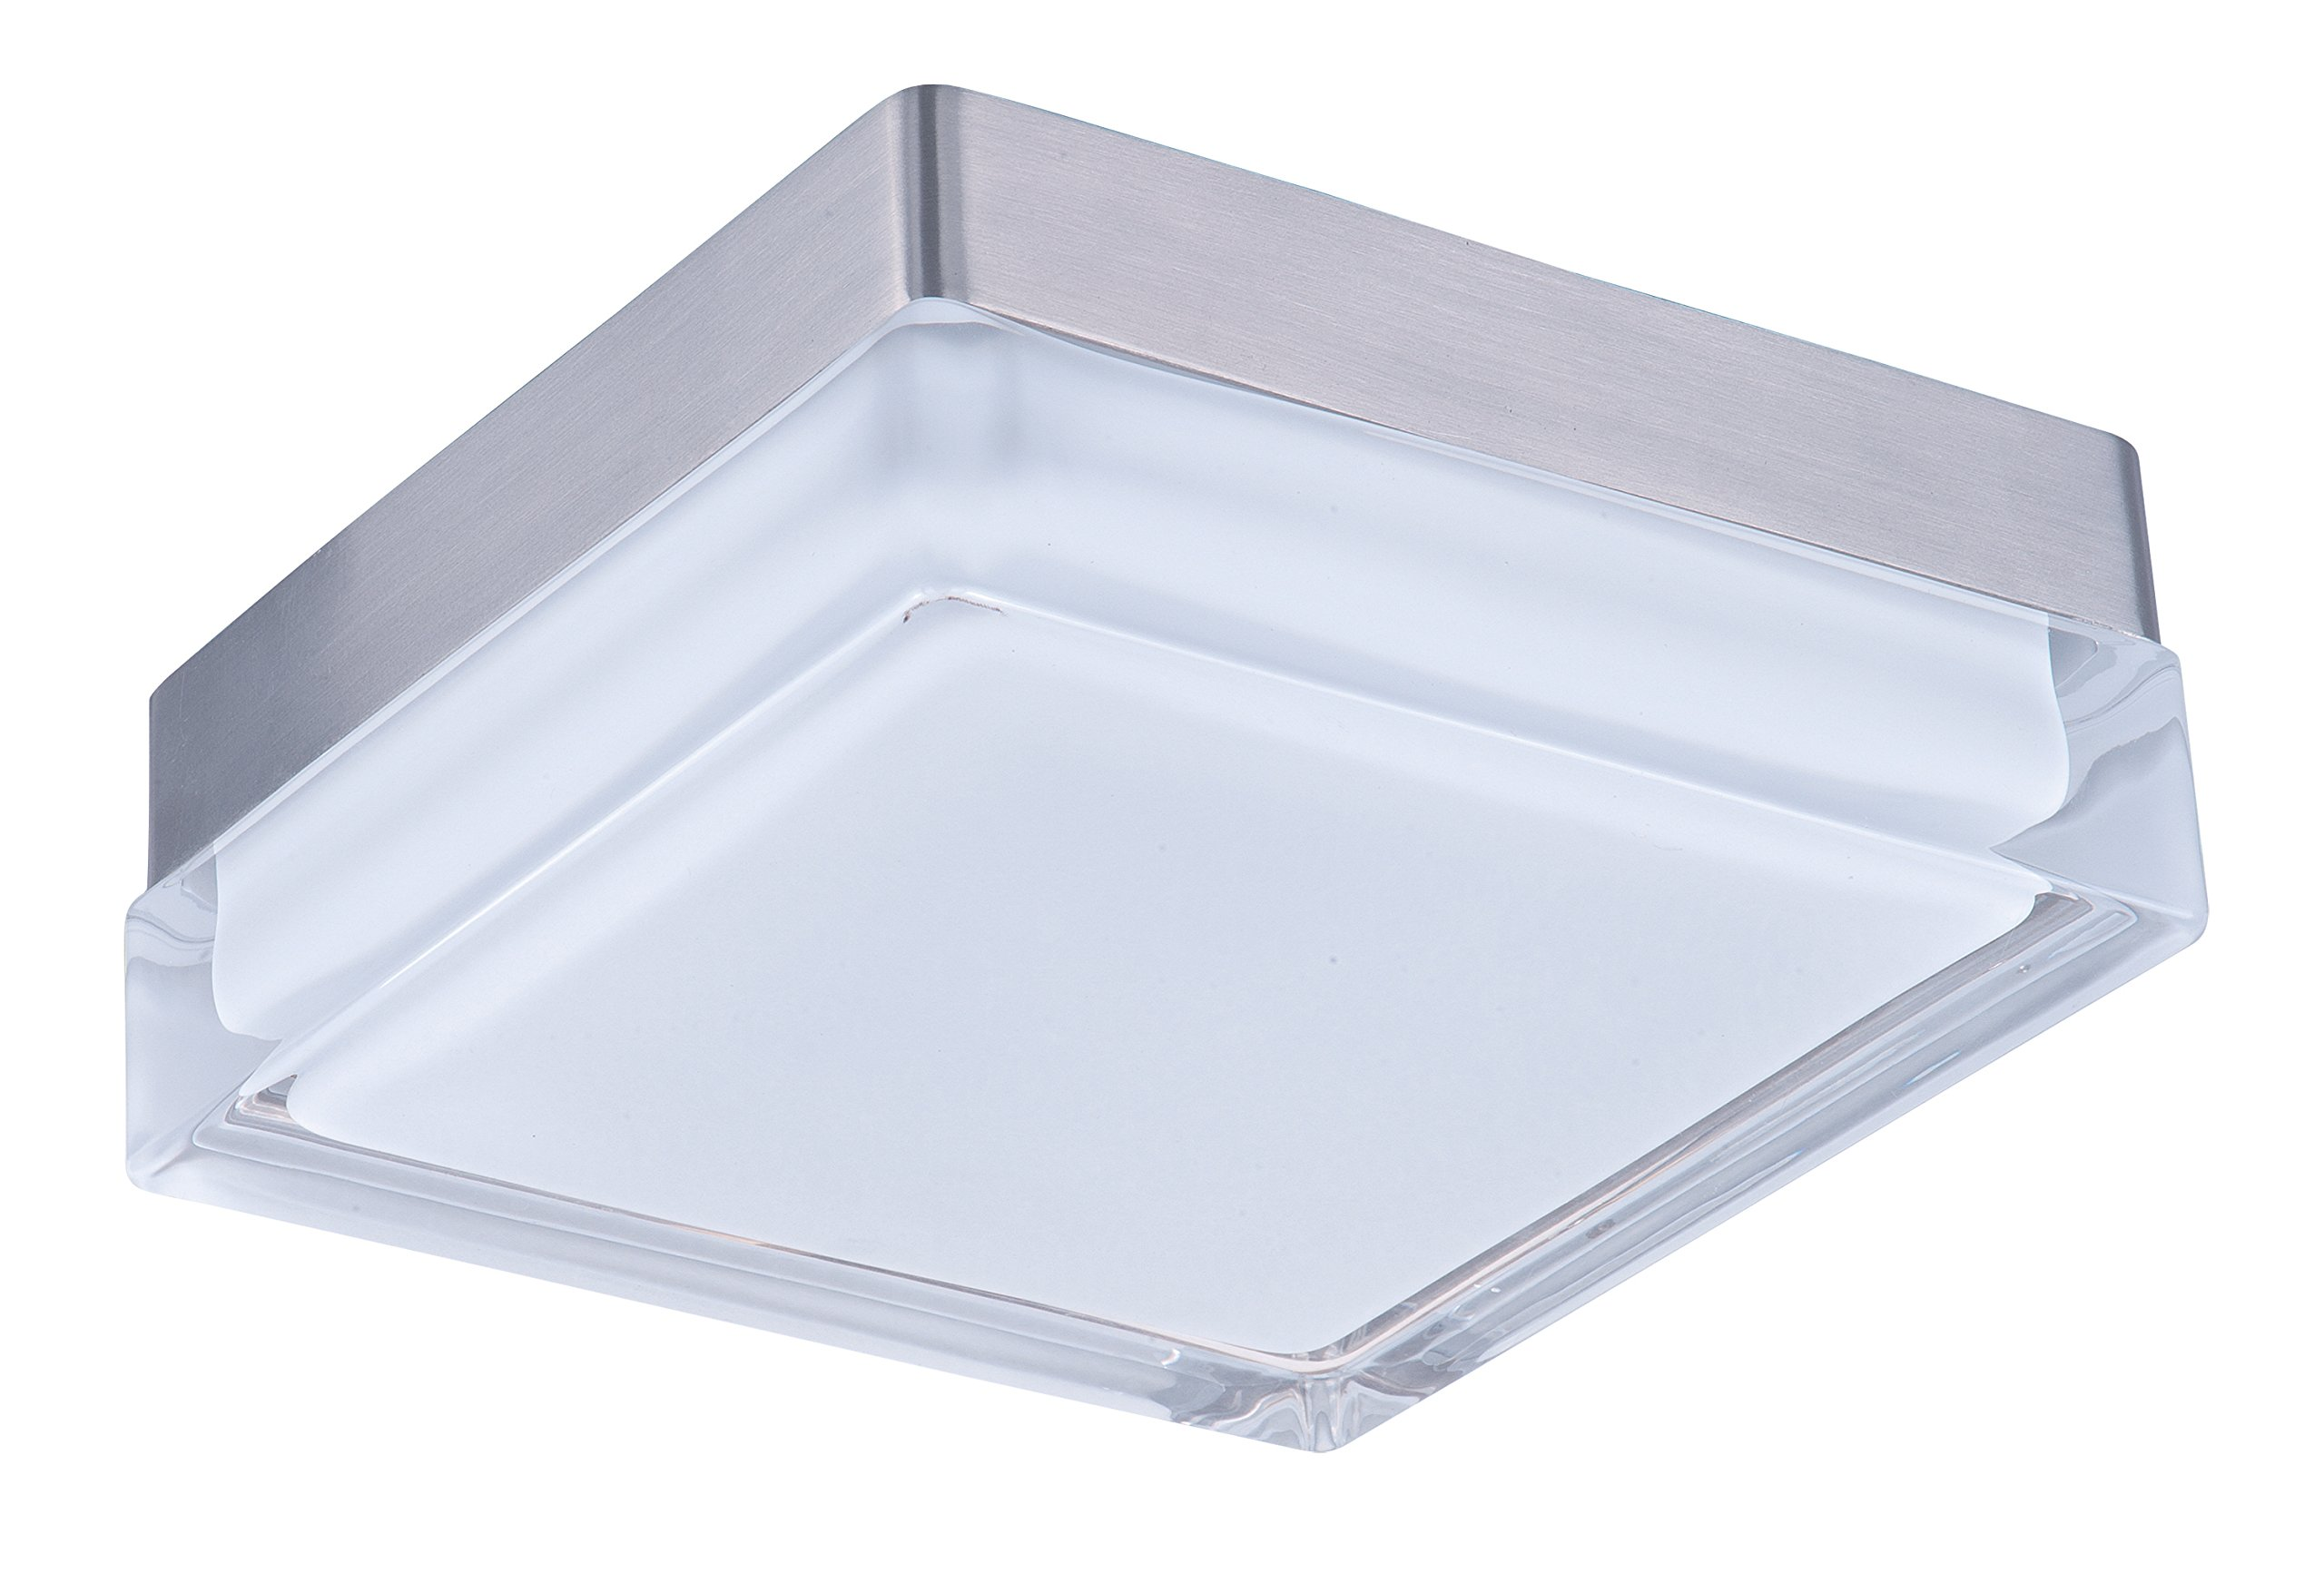 Maxim 87644CLWTSN Illuminaire LED Flush Mount, Satin Nickel Finish, Clear/White Glass, PCB LED Bulb , 60W Max., Damp Safety Rating, Standard Dimmable, Shade Material, 2016 Rated Lumens